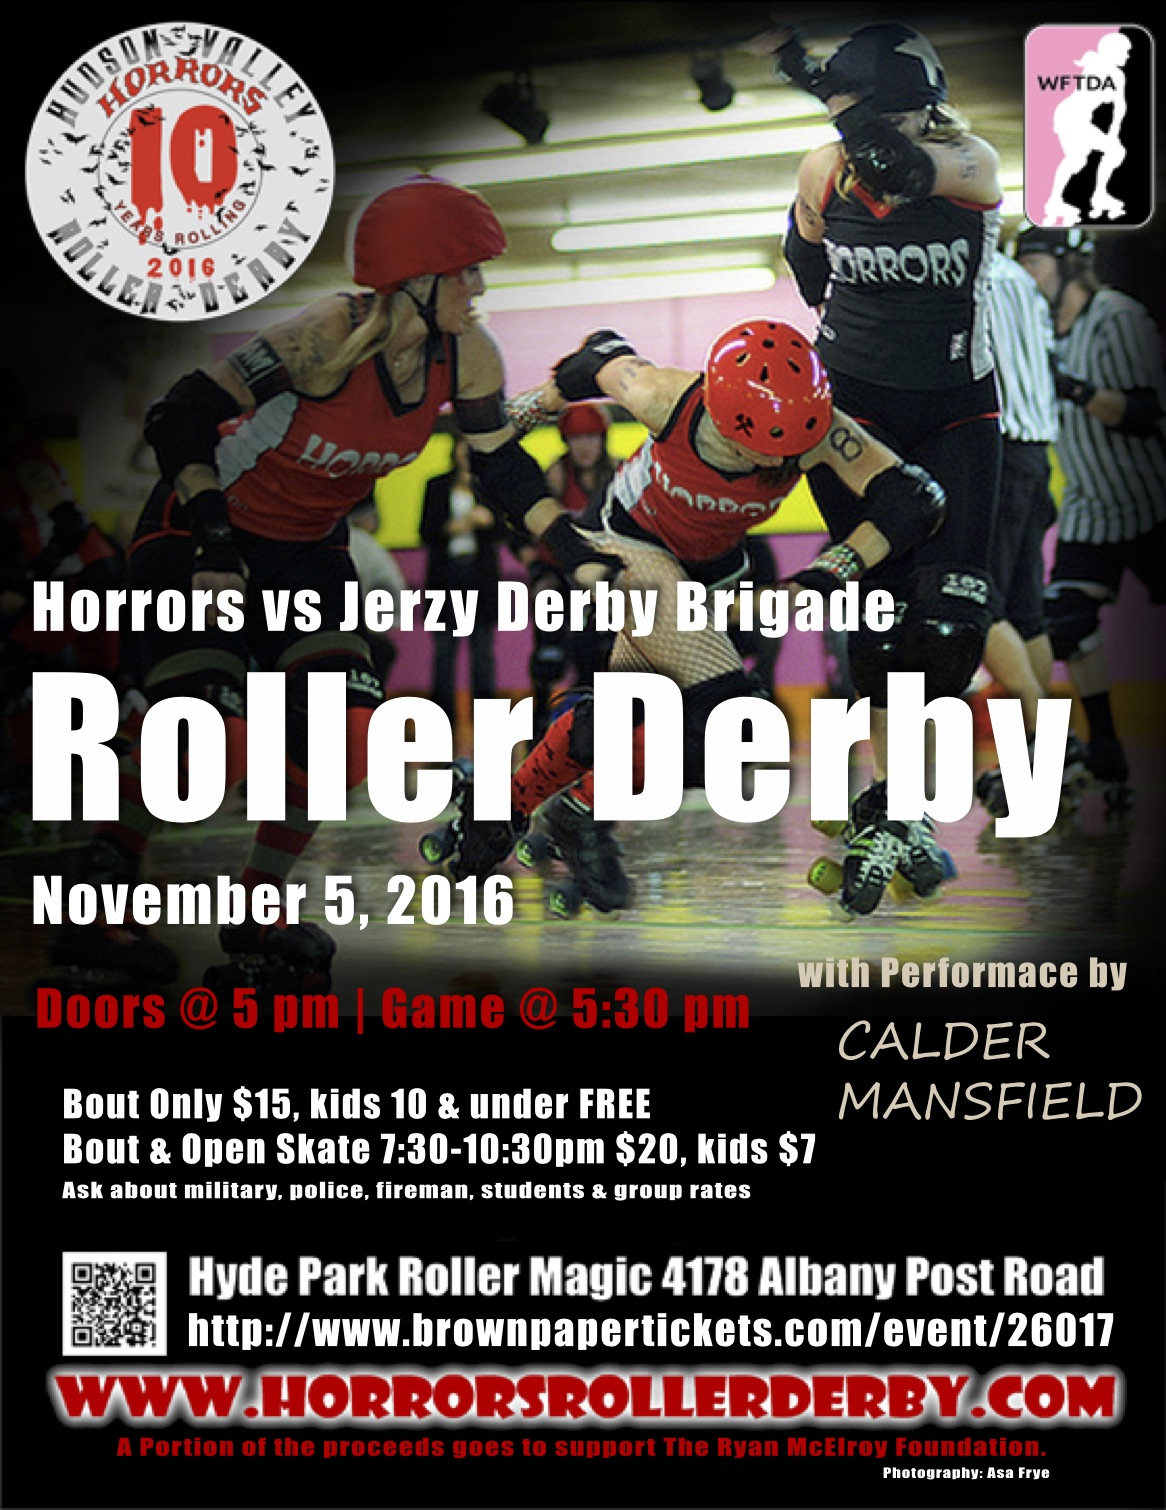 Flyer for Horrors Roller Derby Bout November 5th 2016